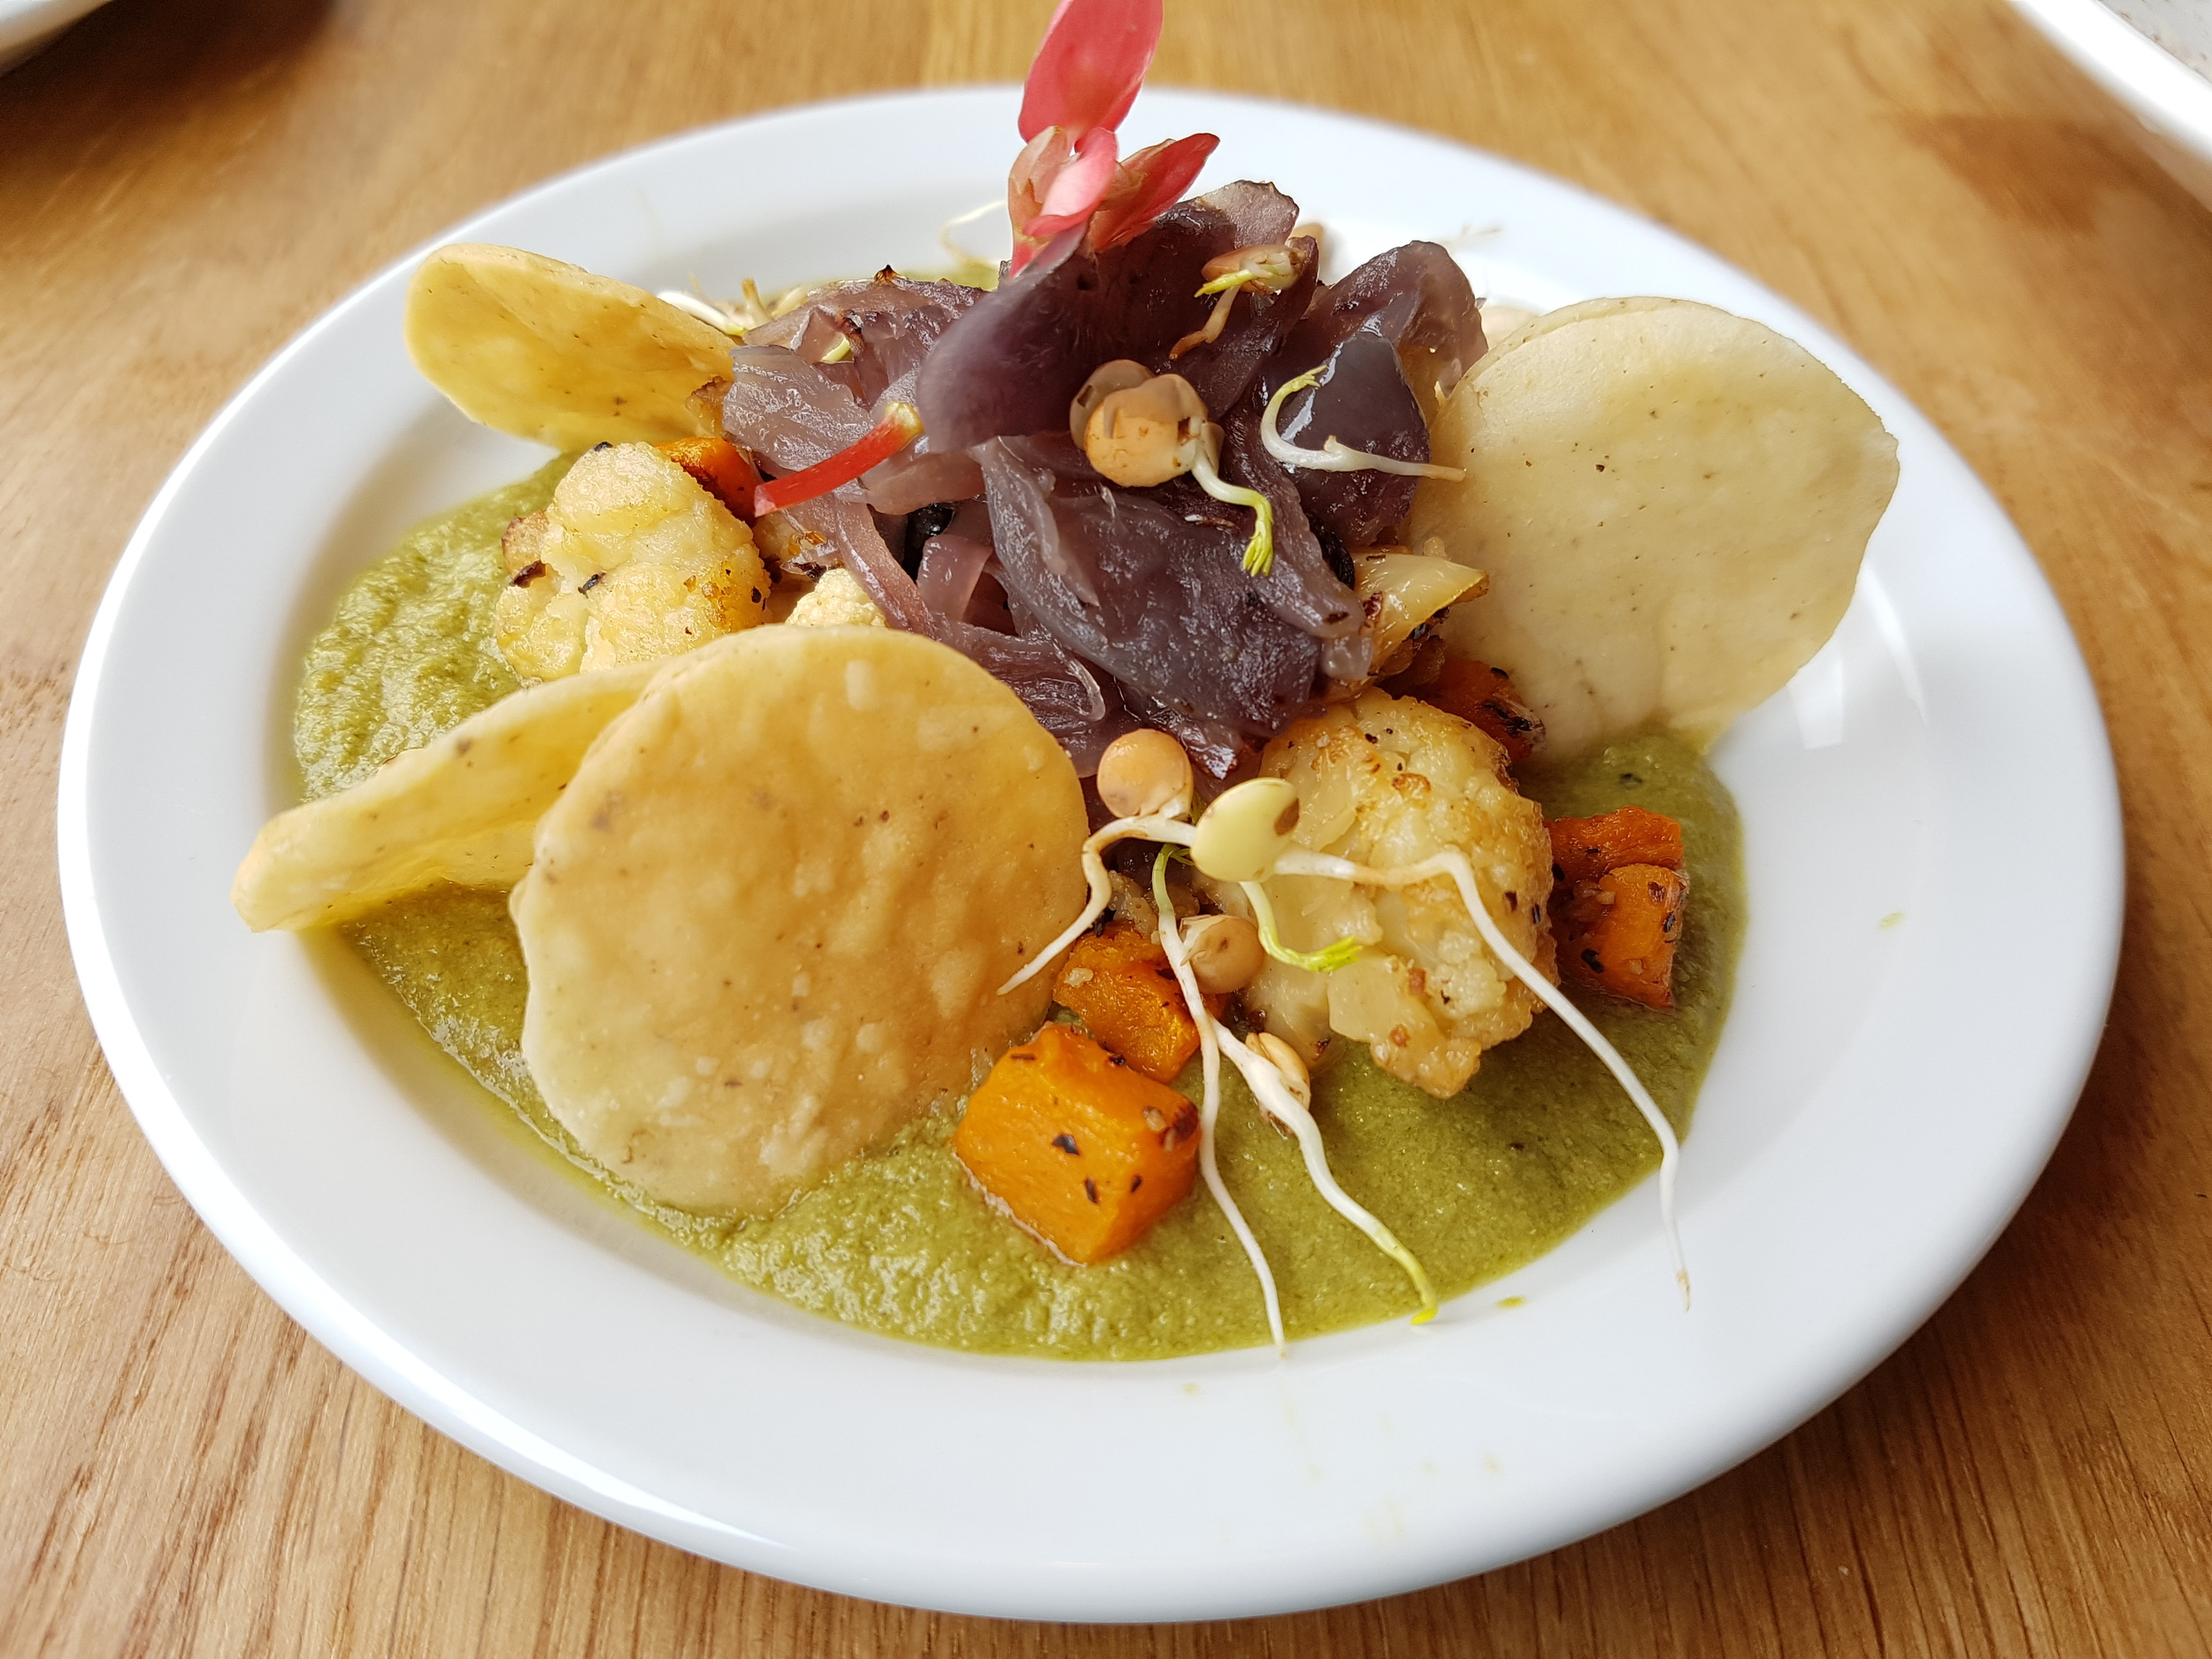 Pipian Mole: Green tomato and nut sauce, served with roasted squash and cauliflower, topped with caramelised onions